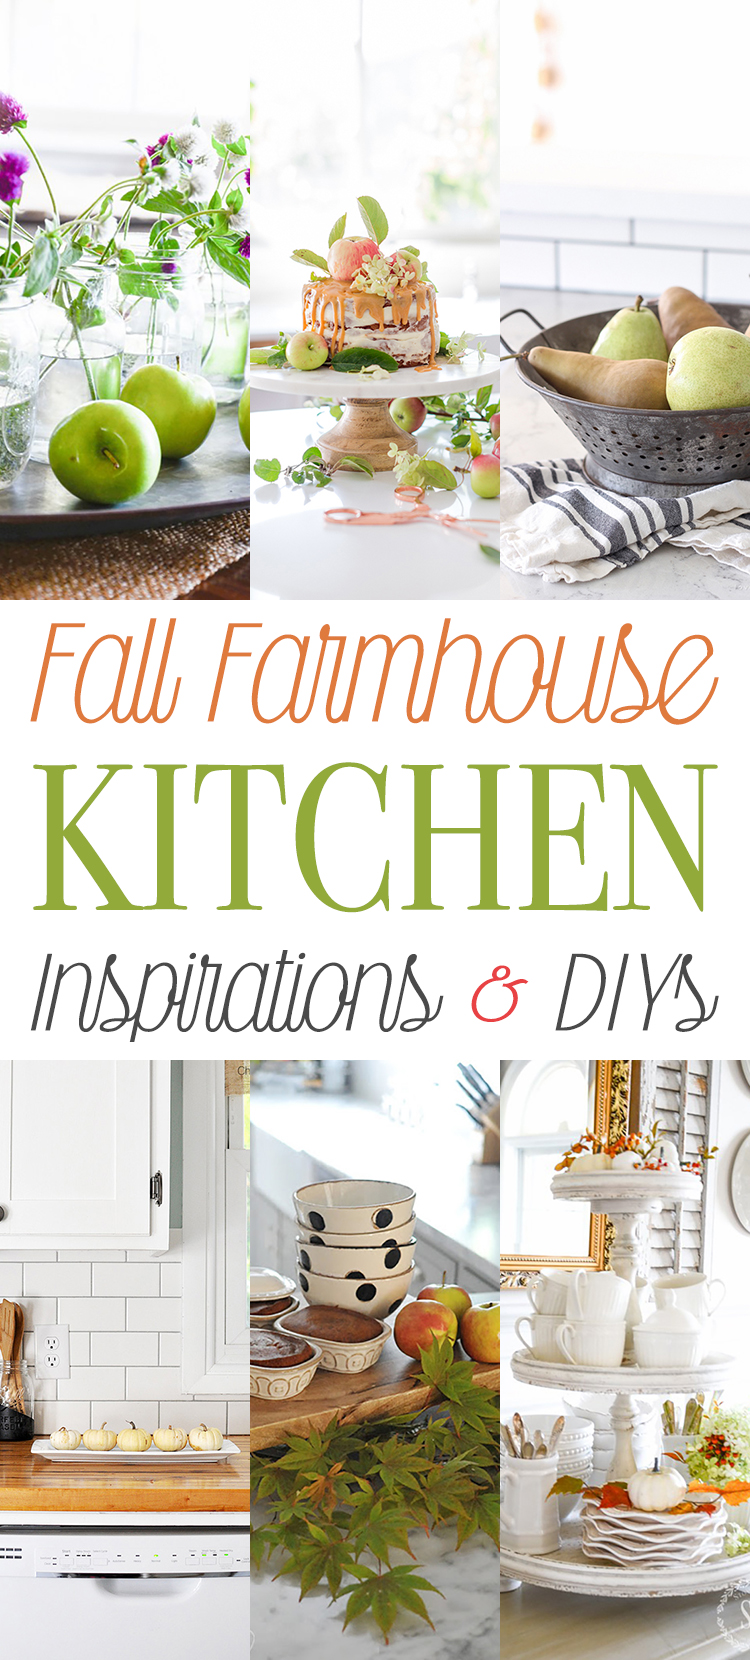 http://thecottagemarket.com/wp-content/uploads/2016/09/FallKitchen-TOWER-0001.jpg